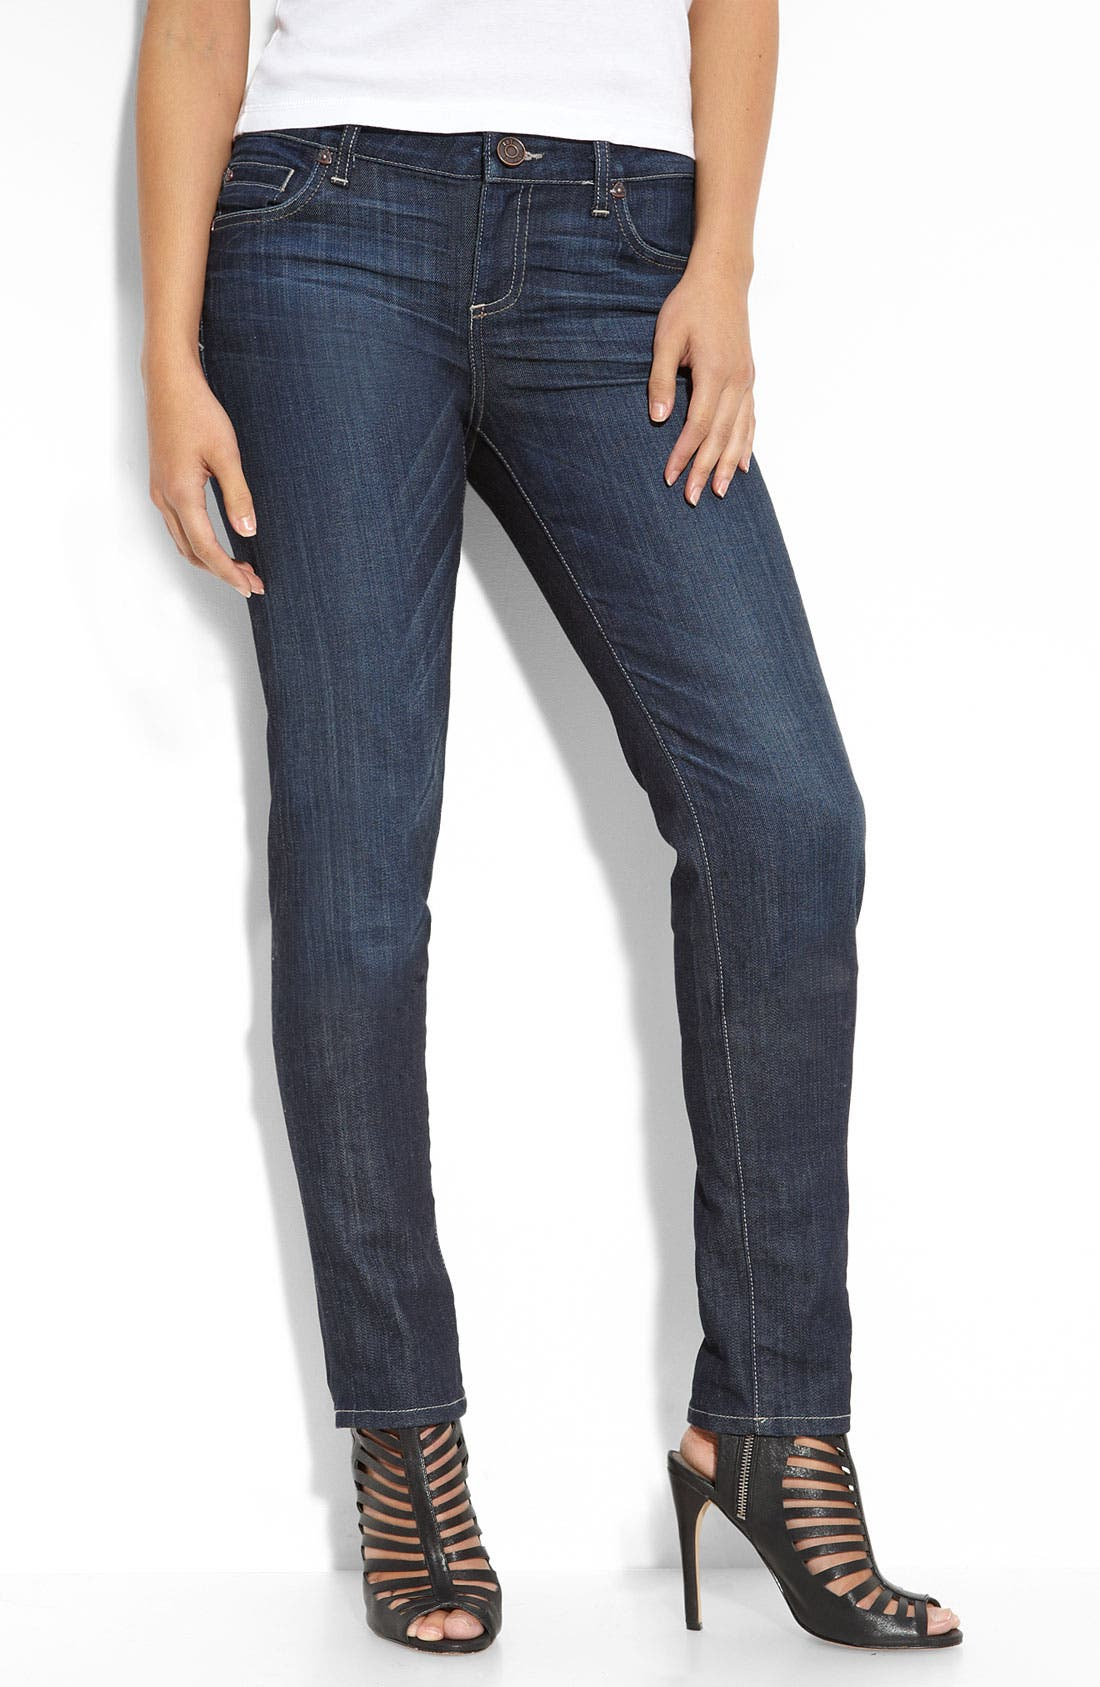 Alternate Image 1 Selected - KUT from the Kloth Skinny Stretch Jeans (Magnificent Wash)